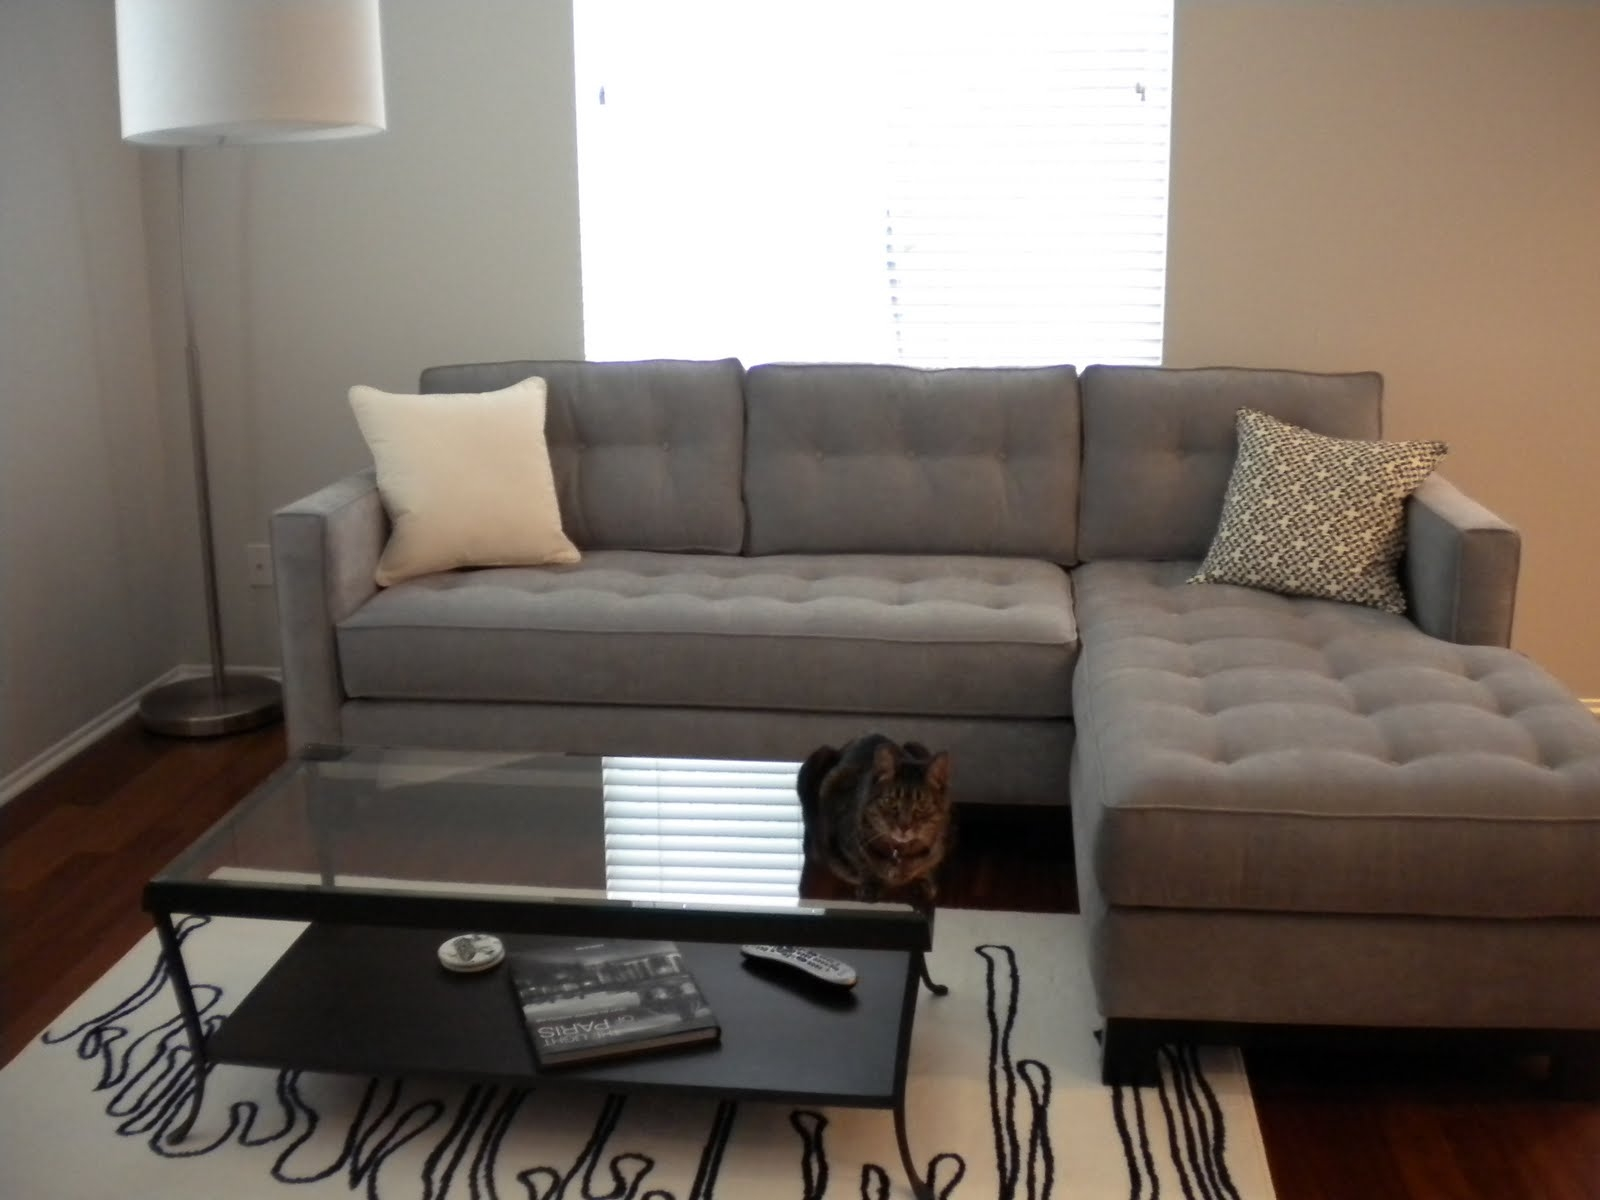 Furniture Superb Gray Velvet Sectional Sofa For Elegant Comfy Within Comfy Floor Seating (Image 7 of 15)